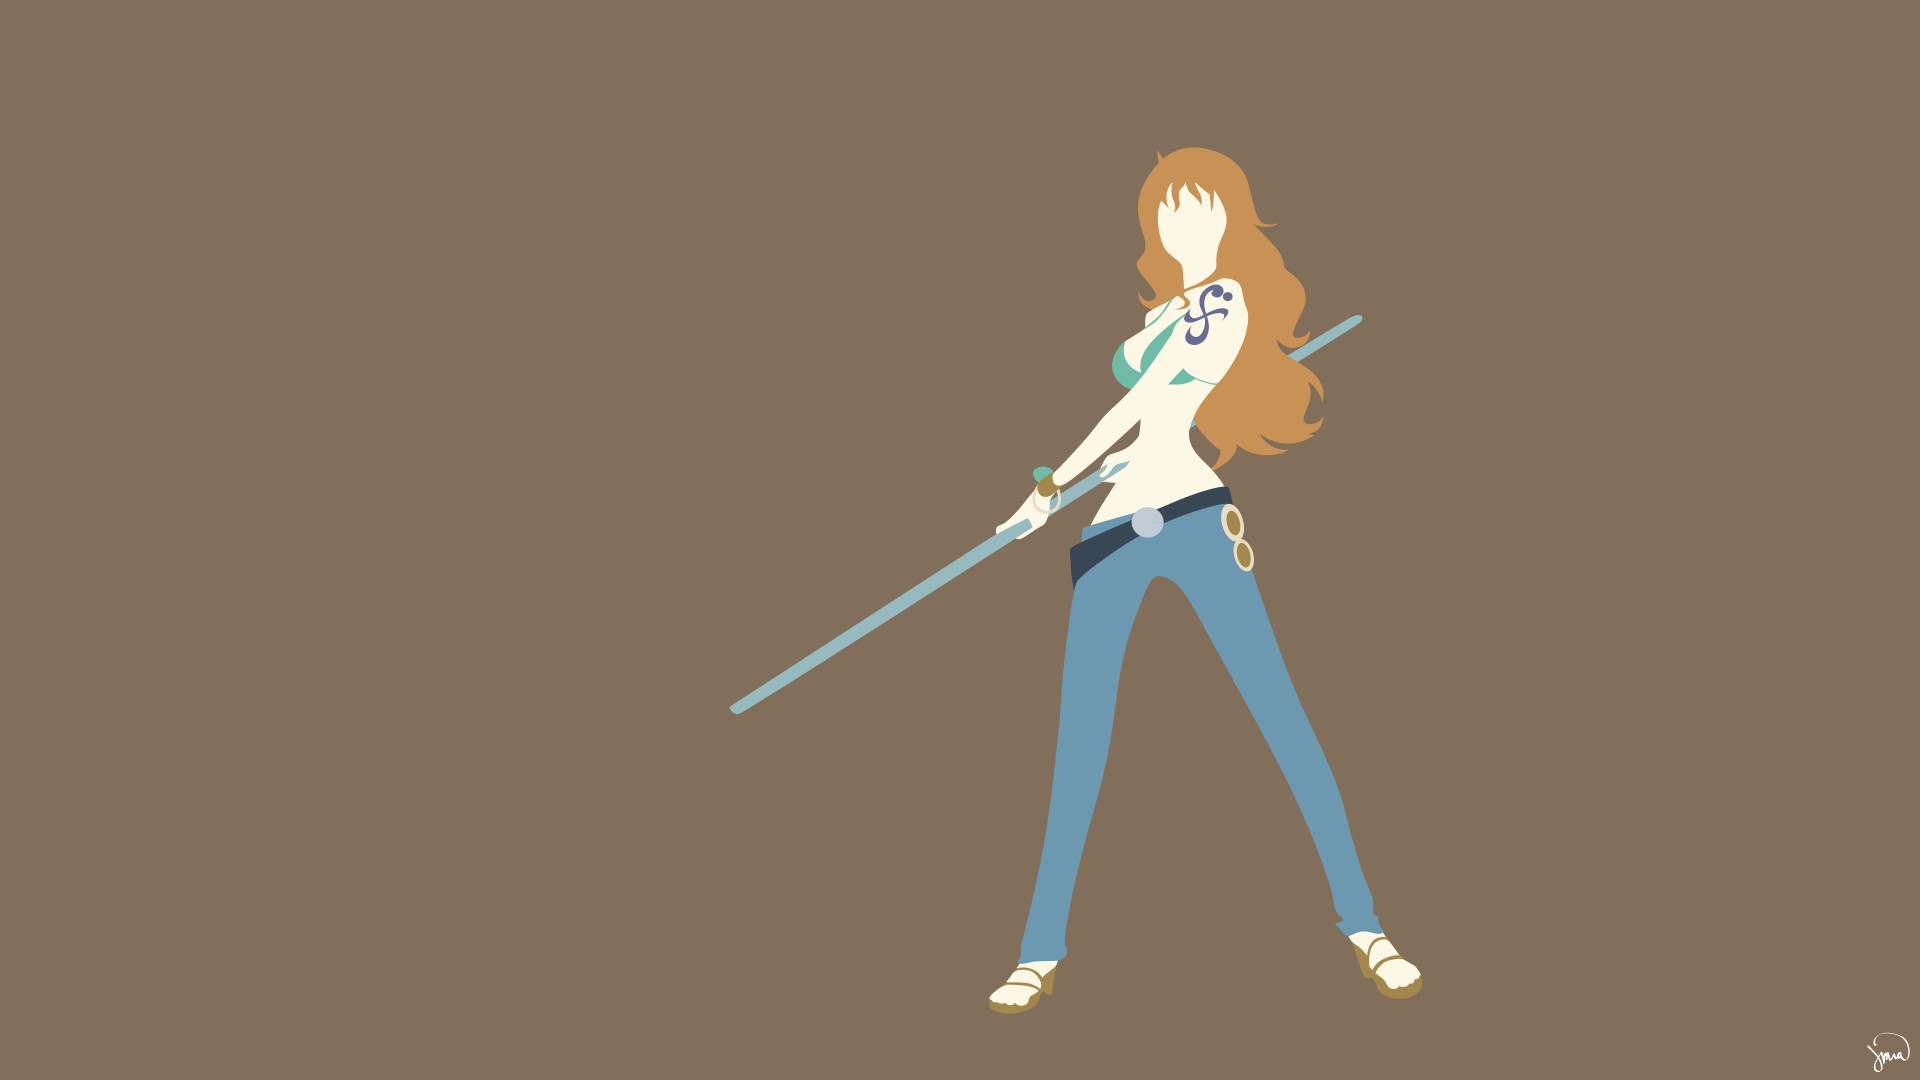 Res: 1920x1080, One Piece images Nami (>w<) HD wallpaper and background photos